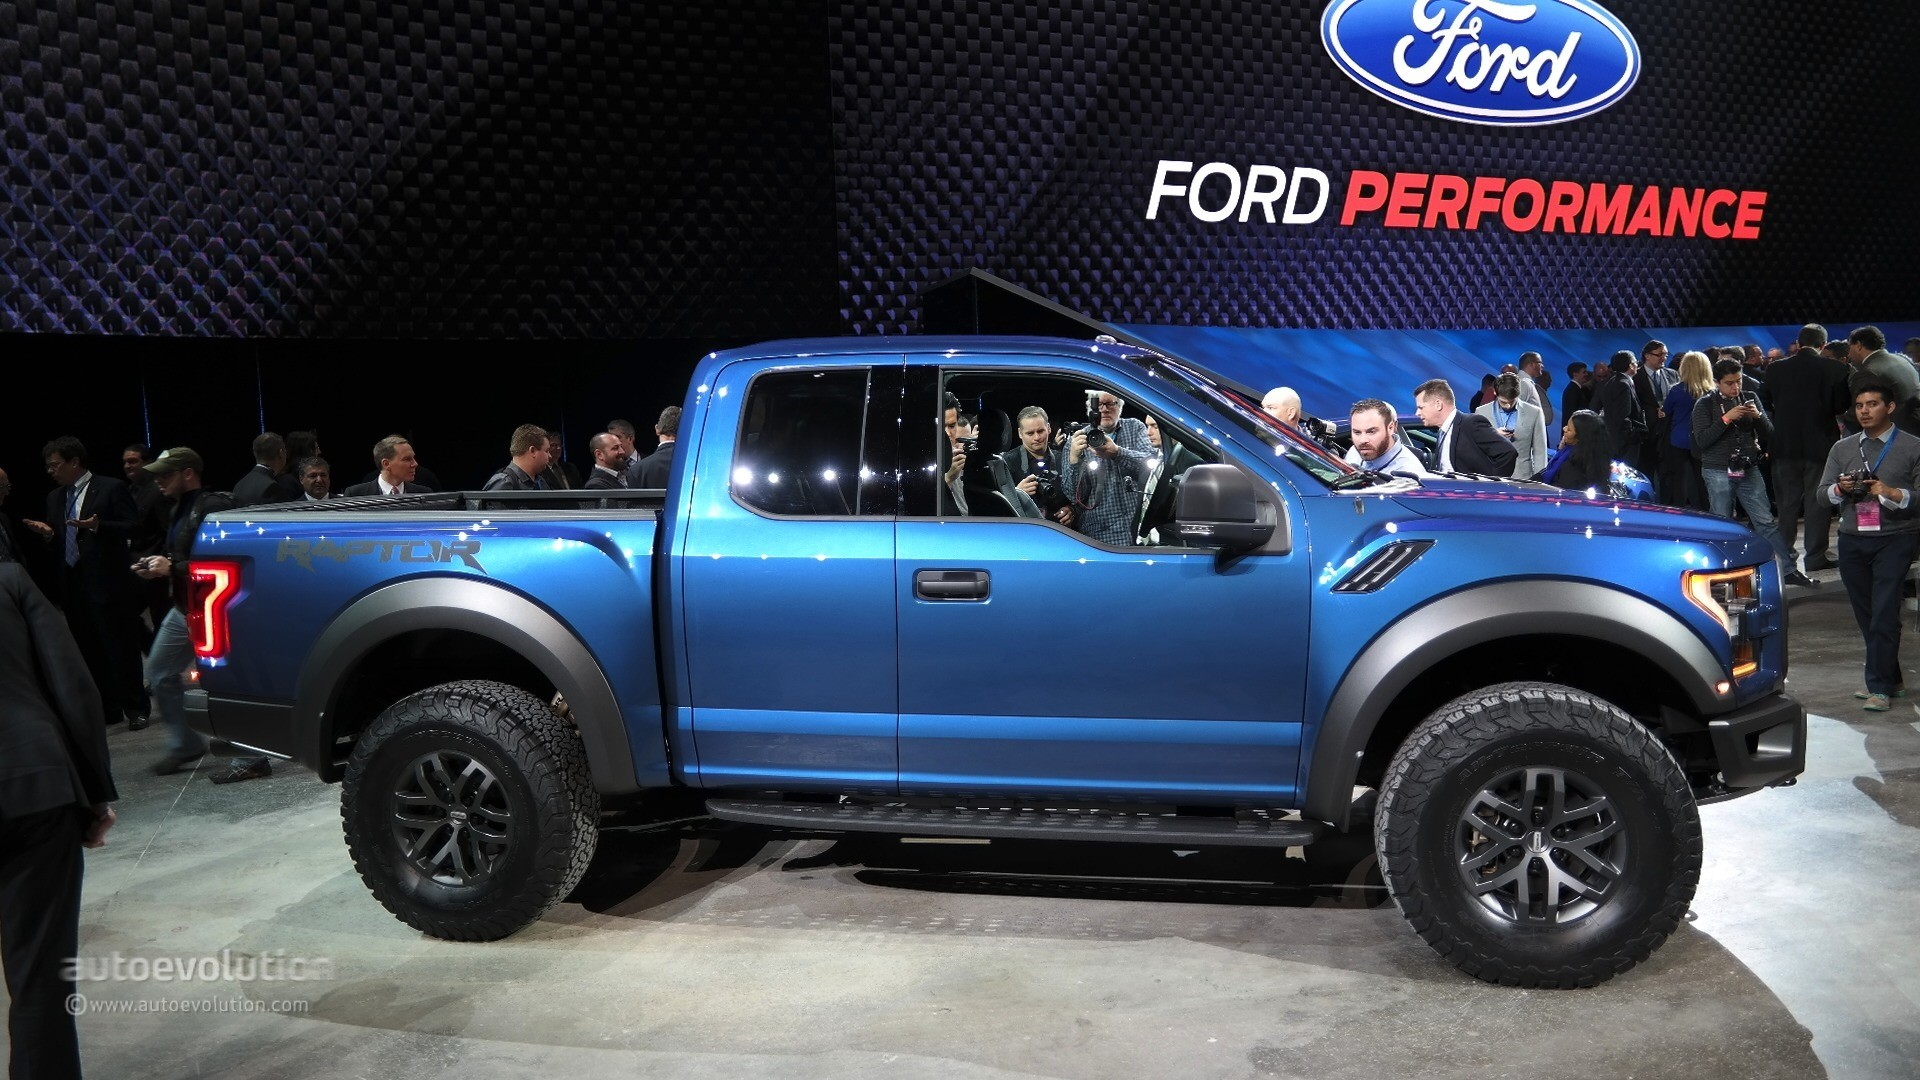 Ford 7X V8 Engine Reportedly In The Offing, 2019 F-150